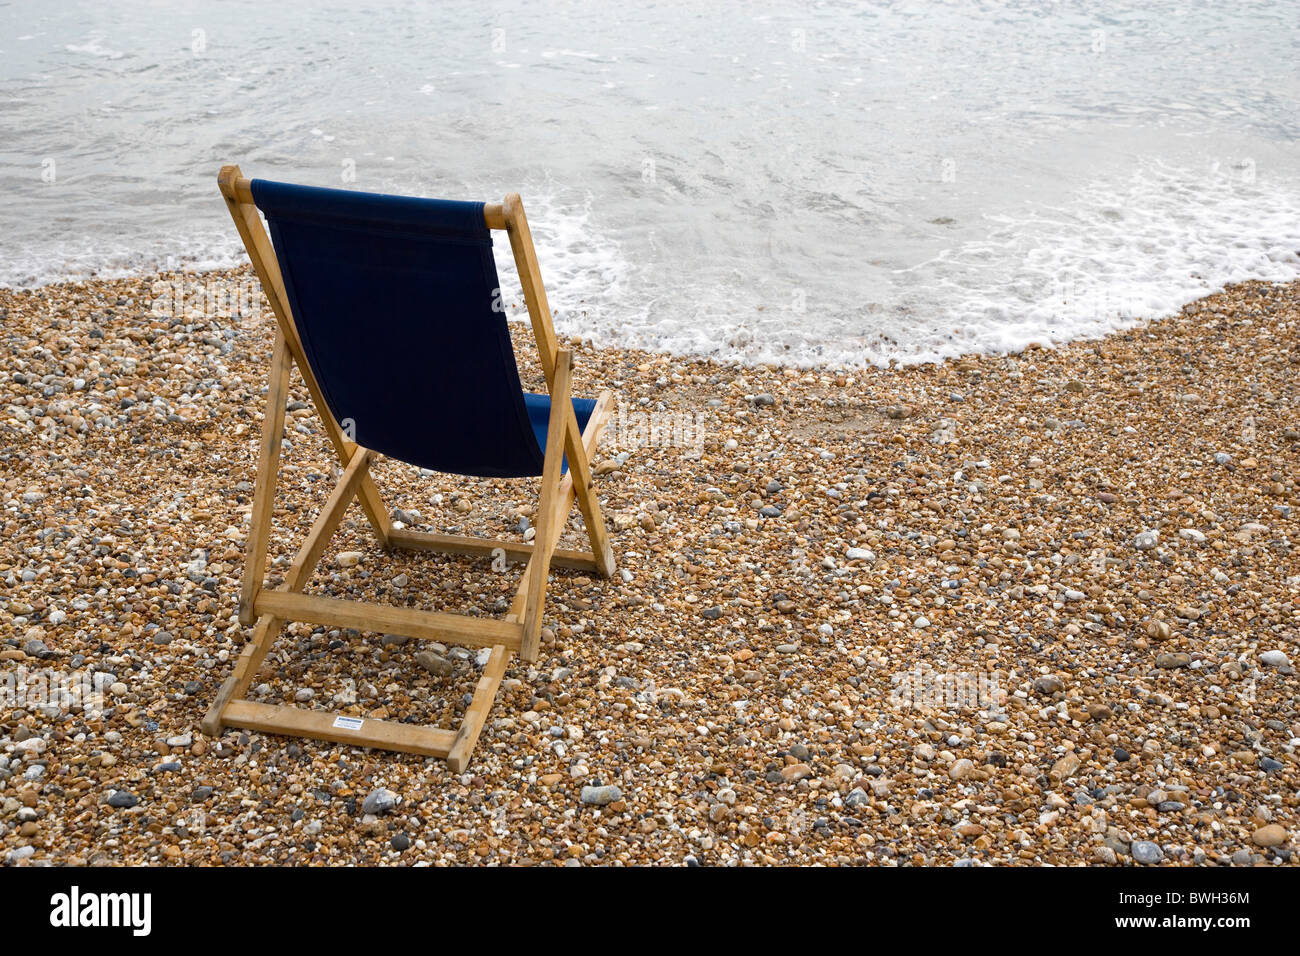 England West Sussex Bognor Regis Single dark blue deck chair on pebble shingle beach looking out to sea with gentle - Stock Image